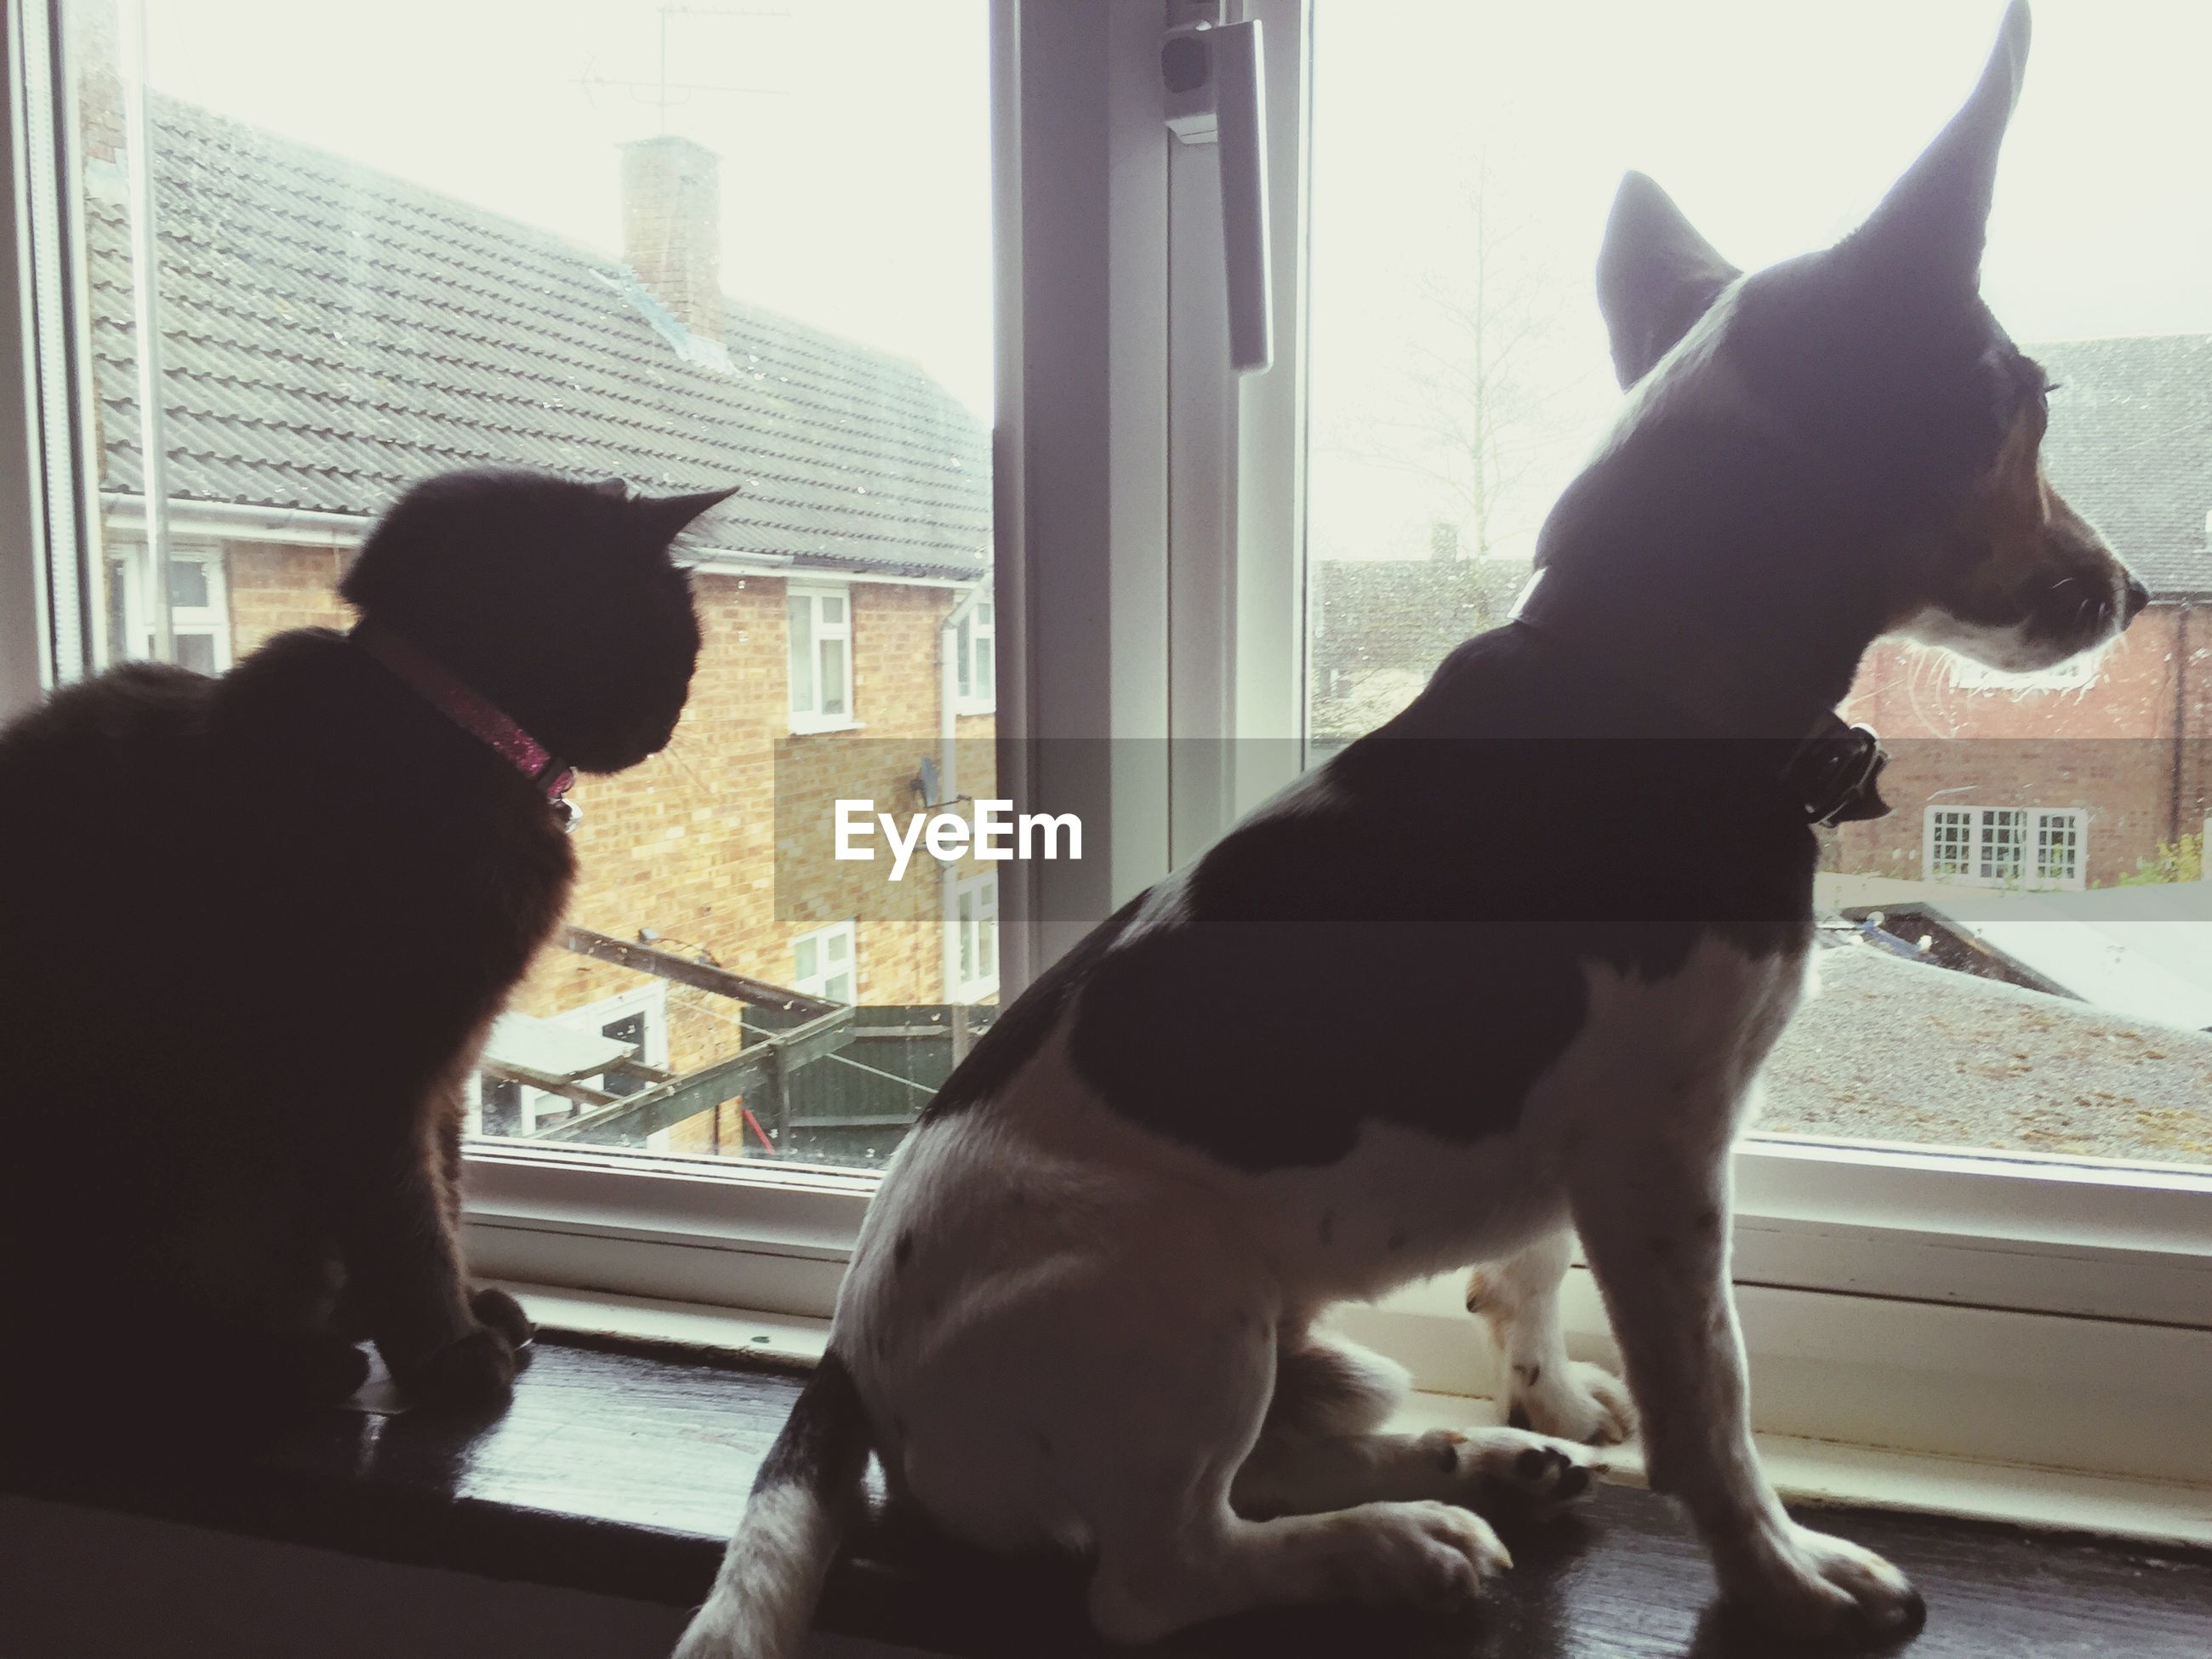 domestic animals, pets, animal themes, one animal, mammal, dog, domestic cat, window, indoors, cat, architecture, one person, building exterior, built structure, glass - material, window sill, pet collar, two animals, looking through window, house